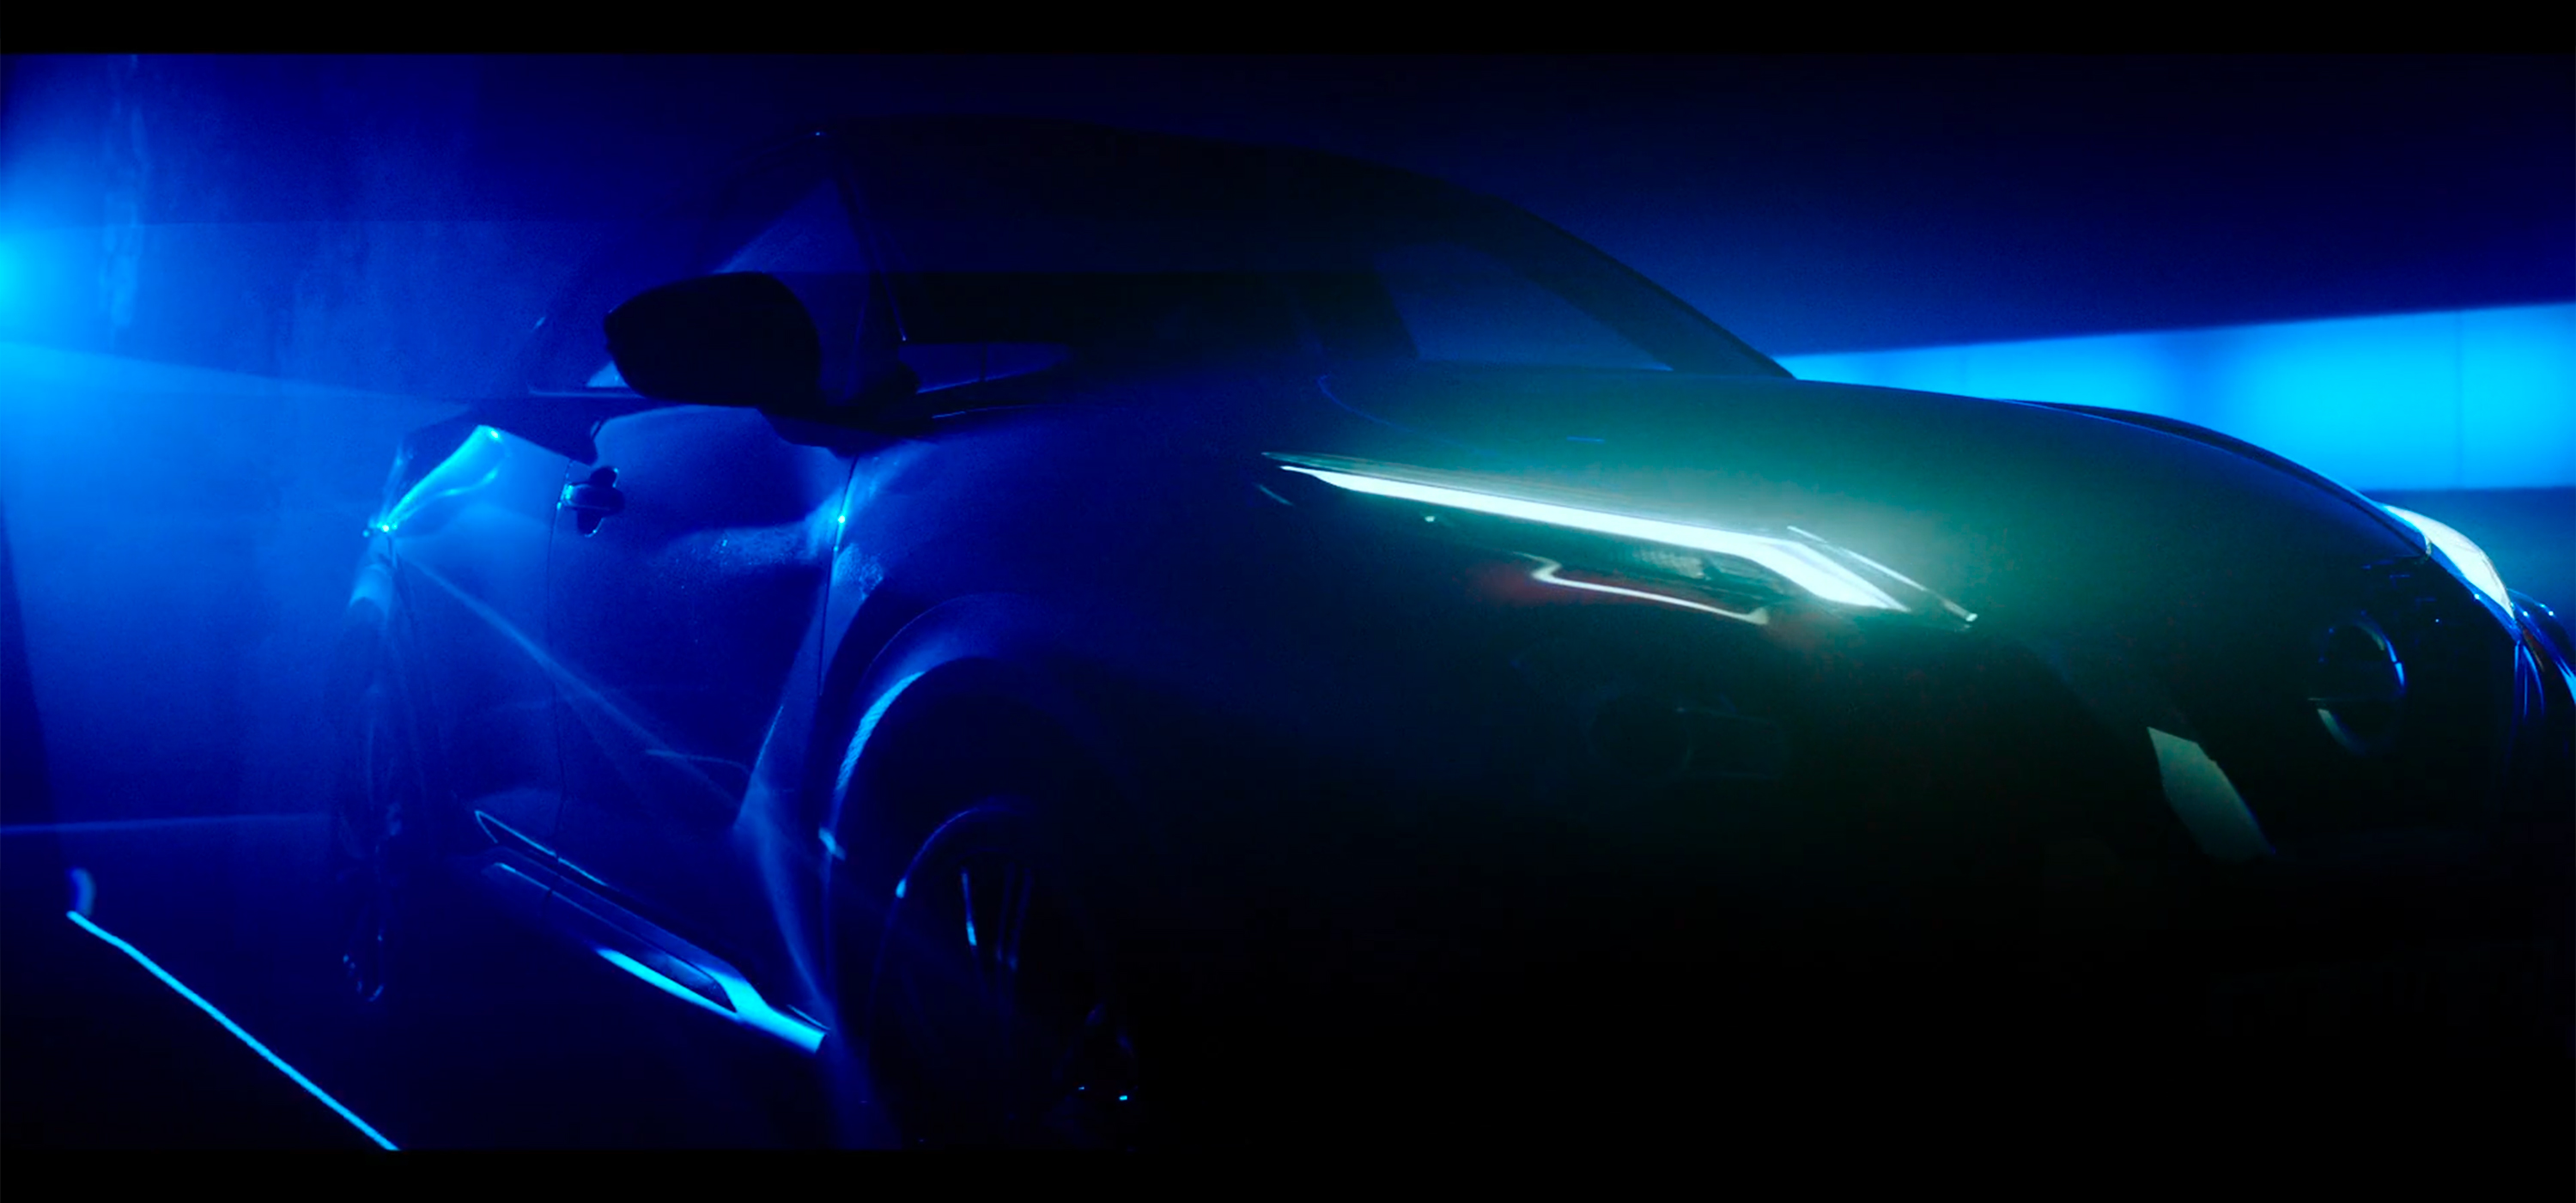 Noul Nissan JUKE video imagine preview